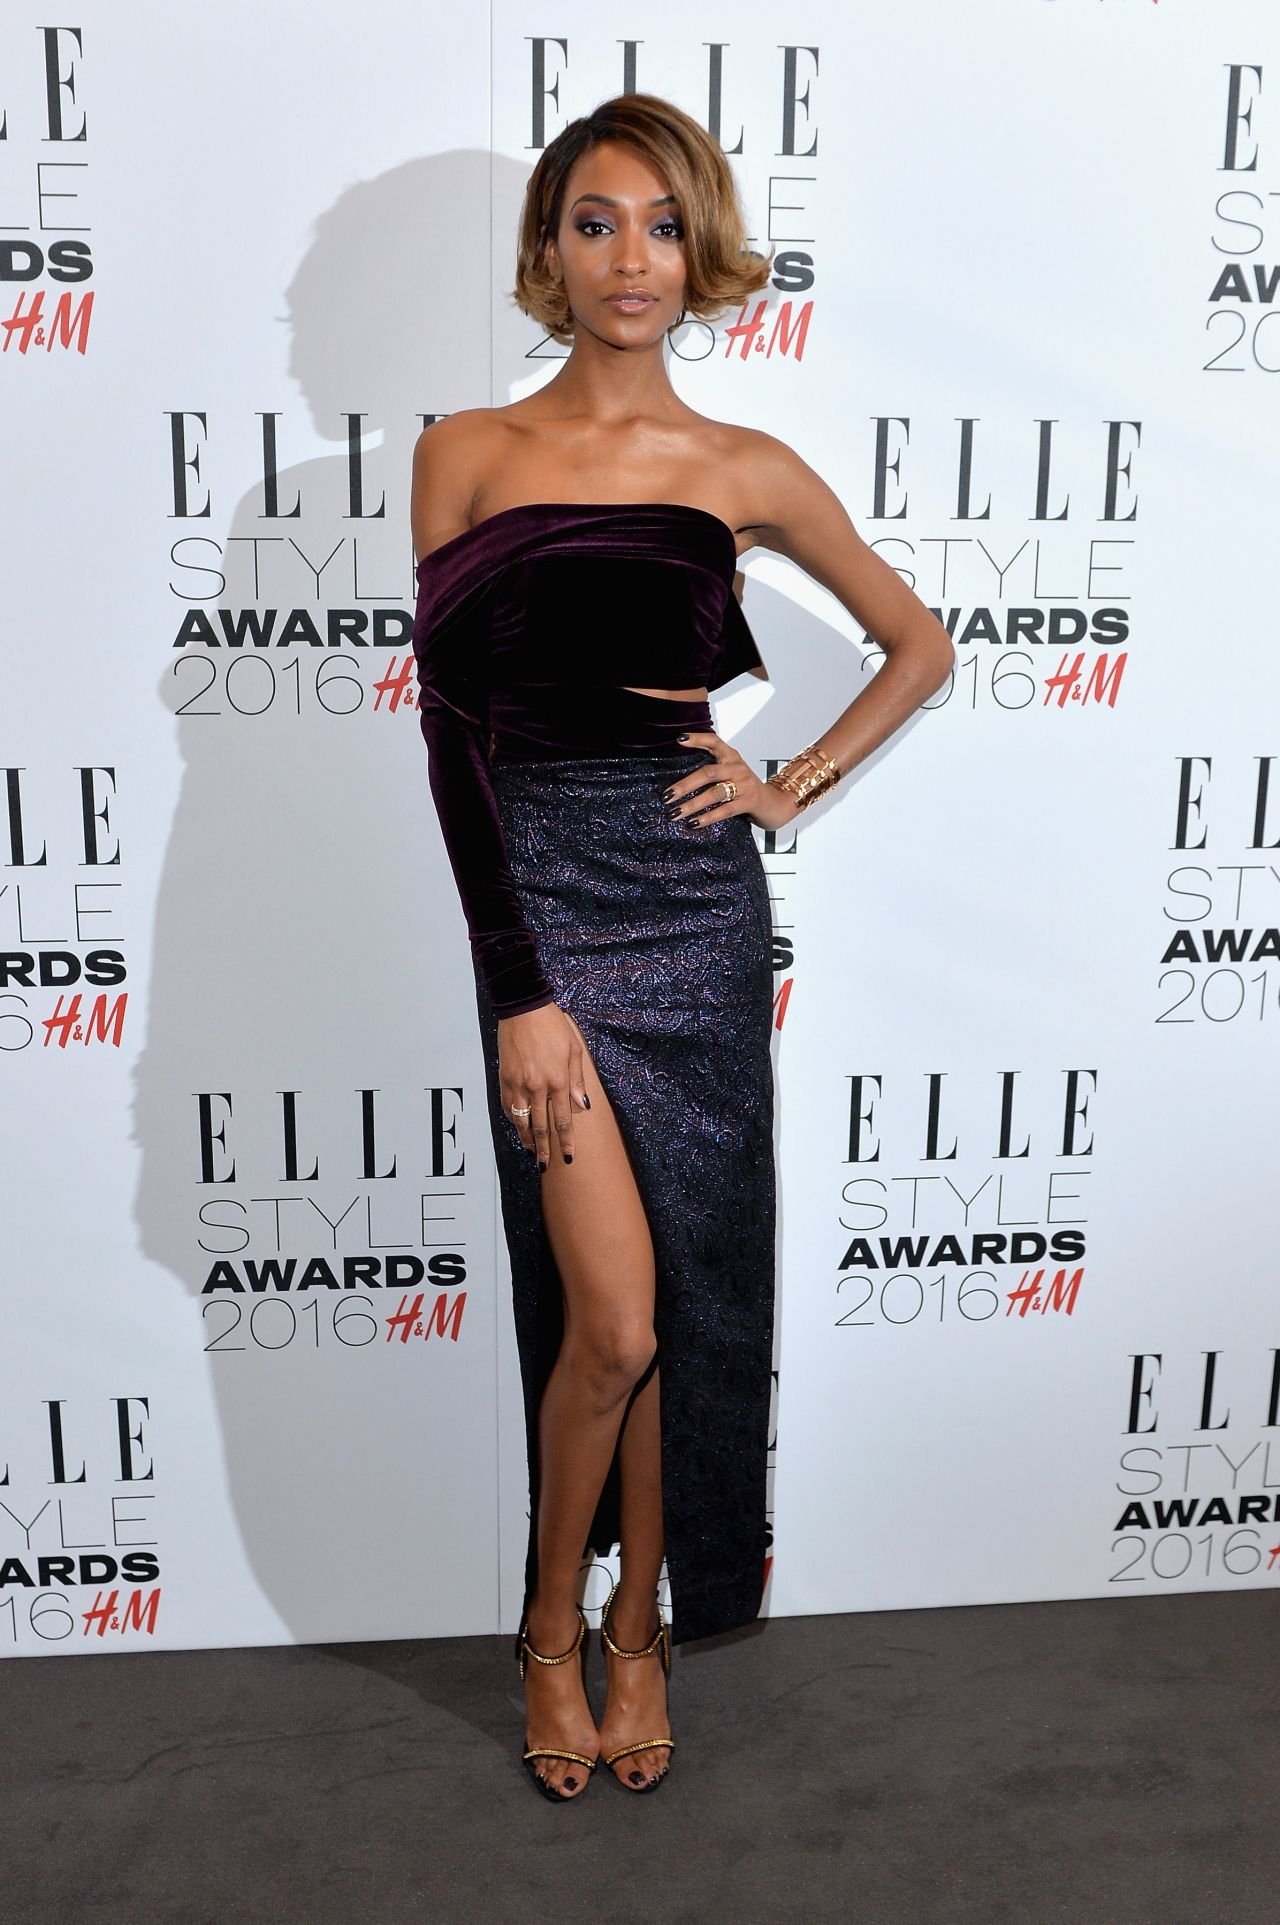 jourdan-dunn-elle-style-awards-2016-in-london-3